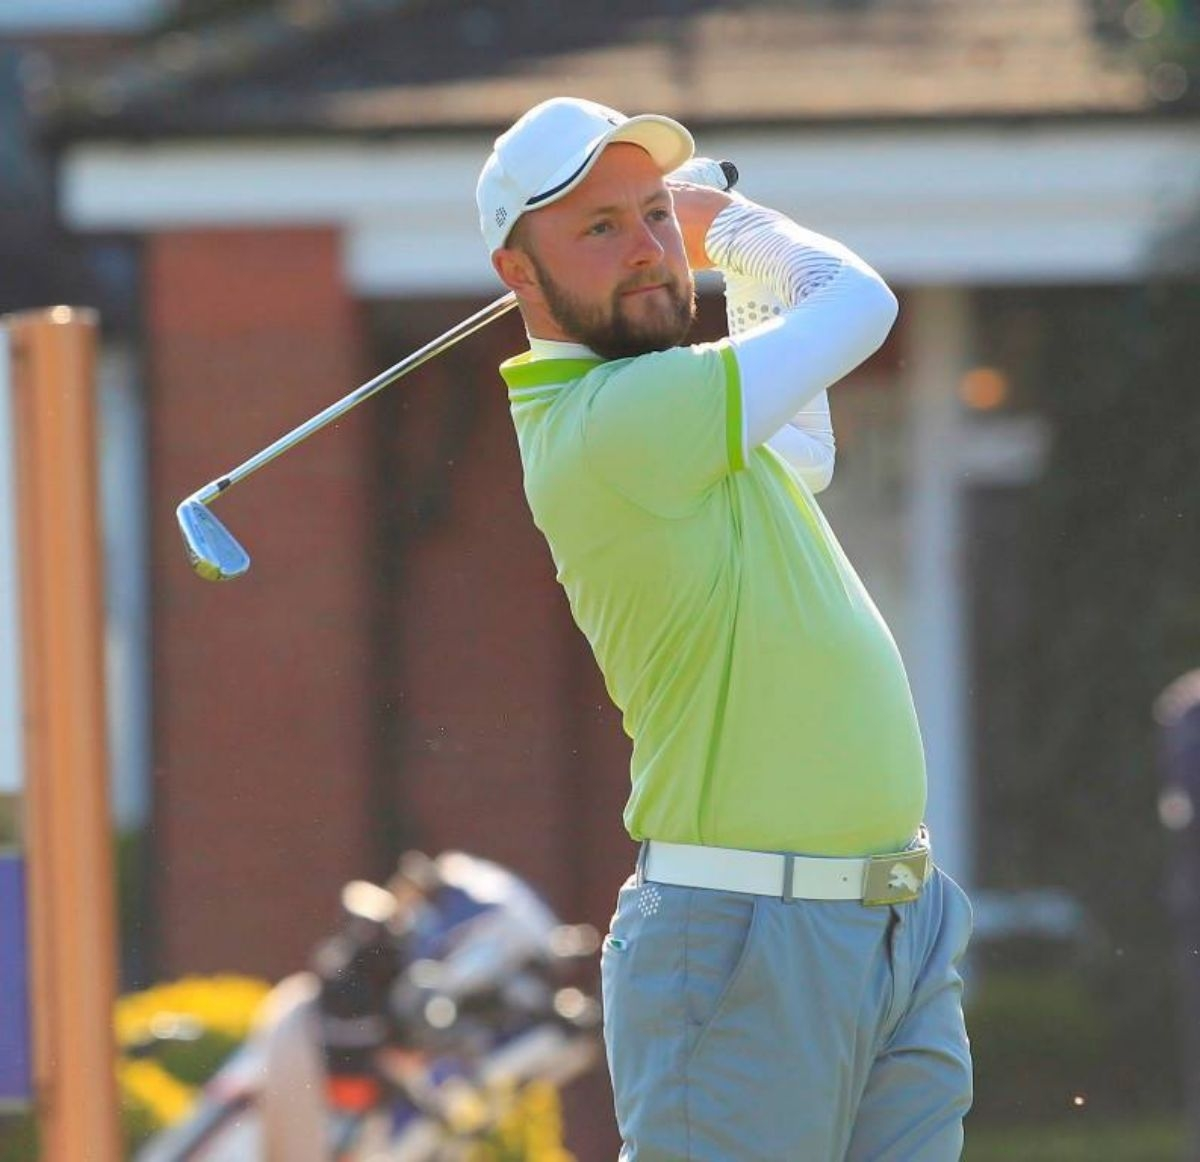 Stuart Archibald in action at the Belfry earlier this year